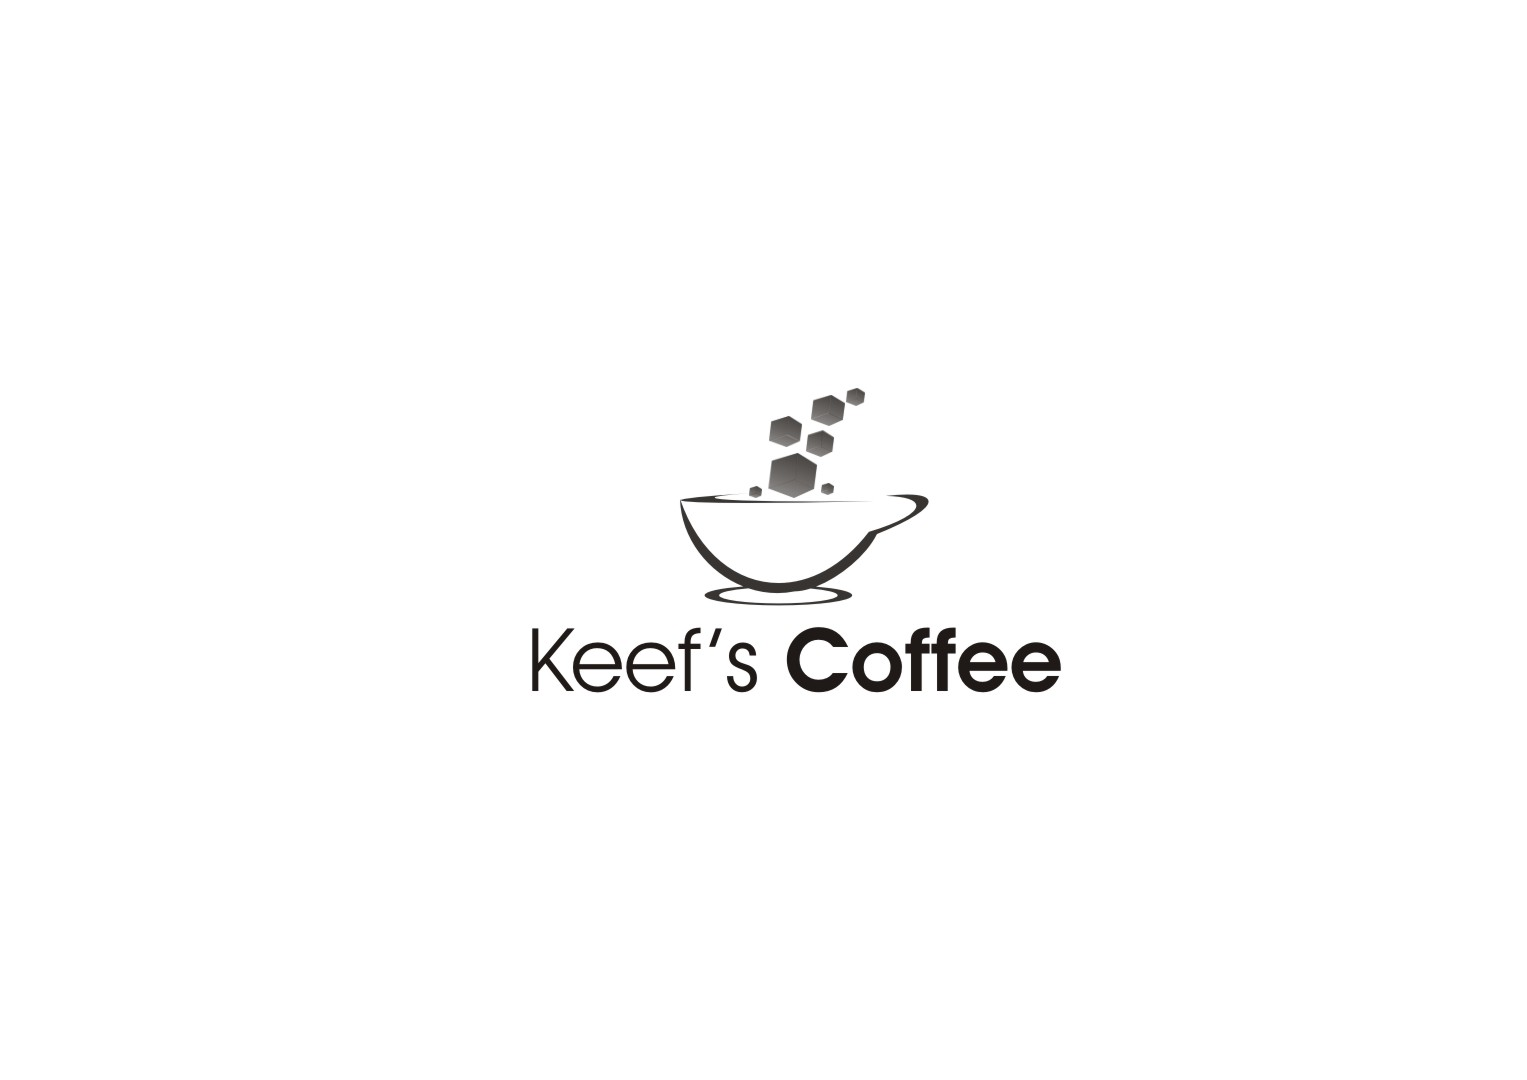 Logo Design by yanxsant - Entry No. 1 in the Logo Design Contest Keef's coffee Logo Design.